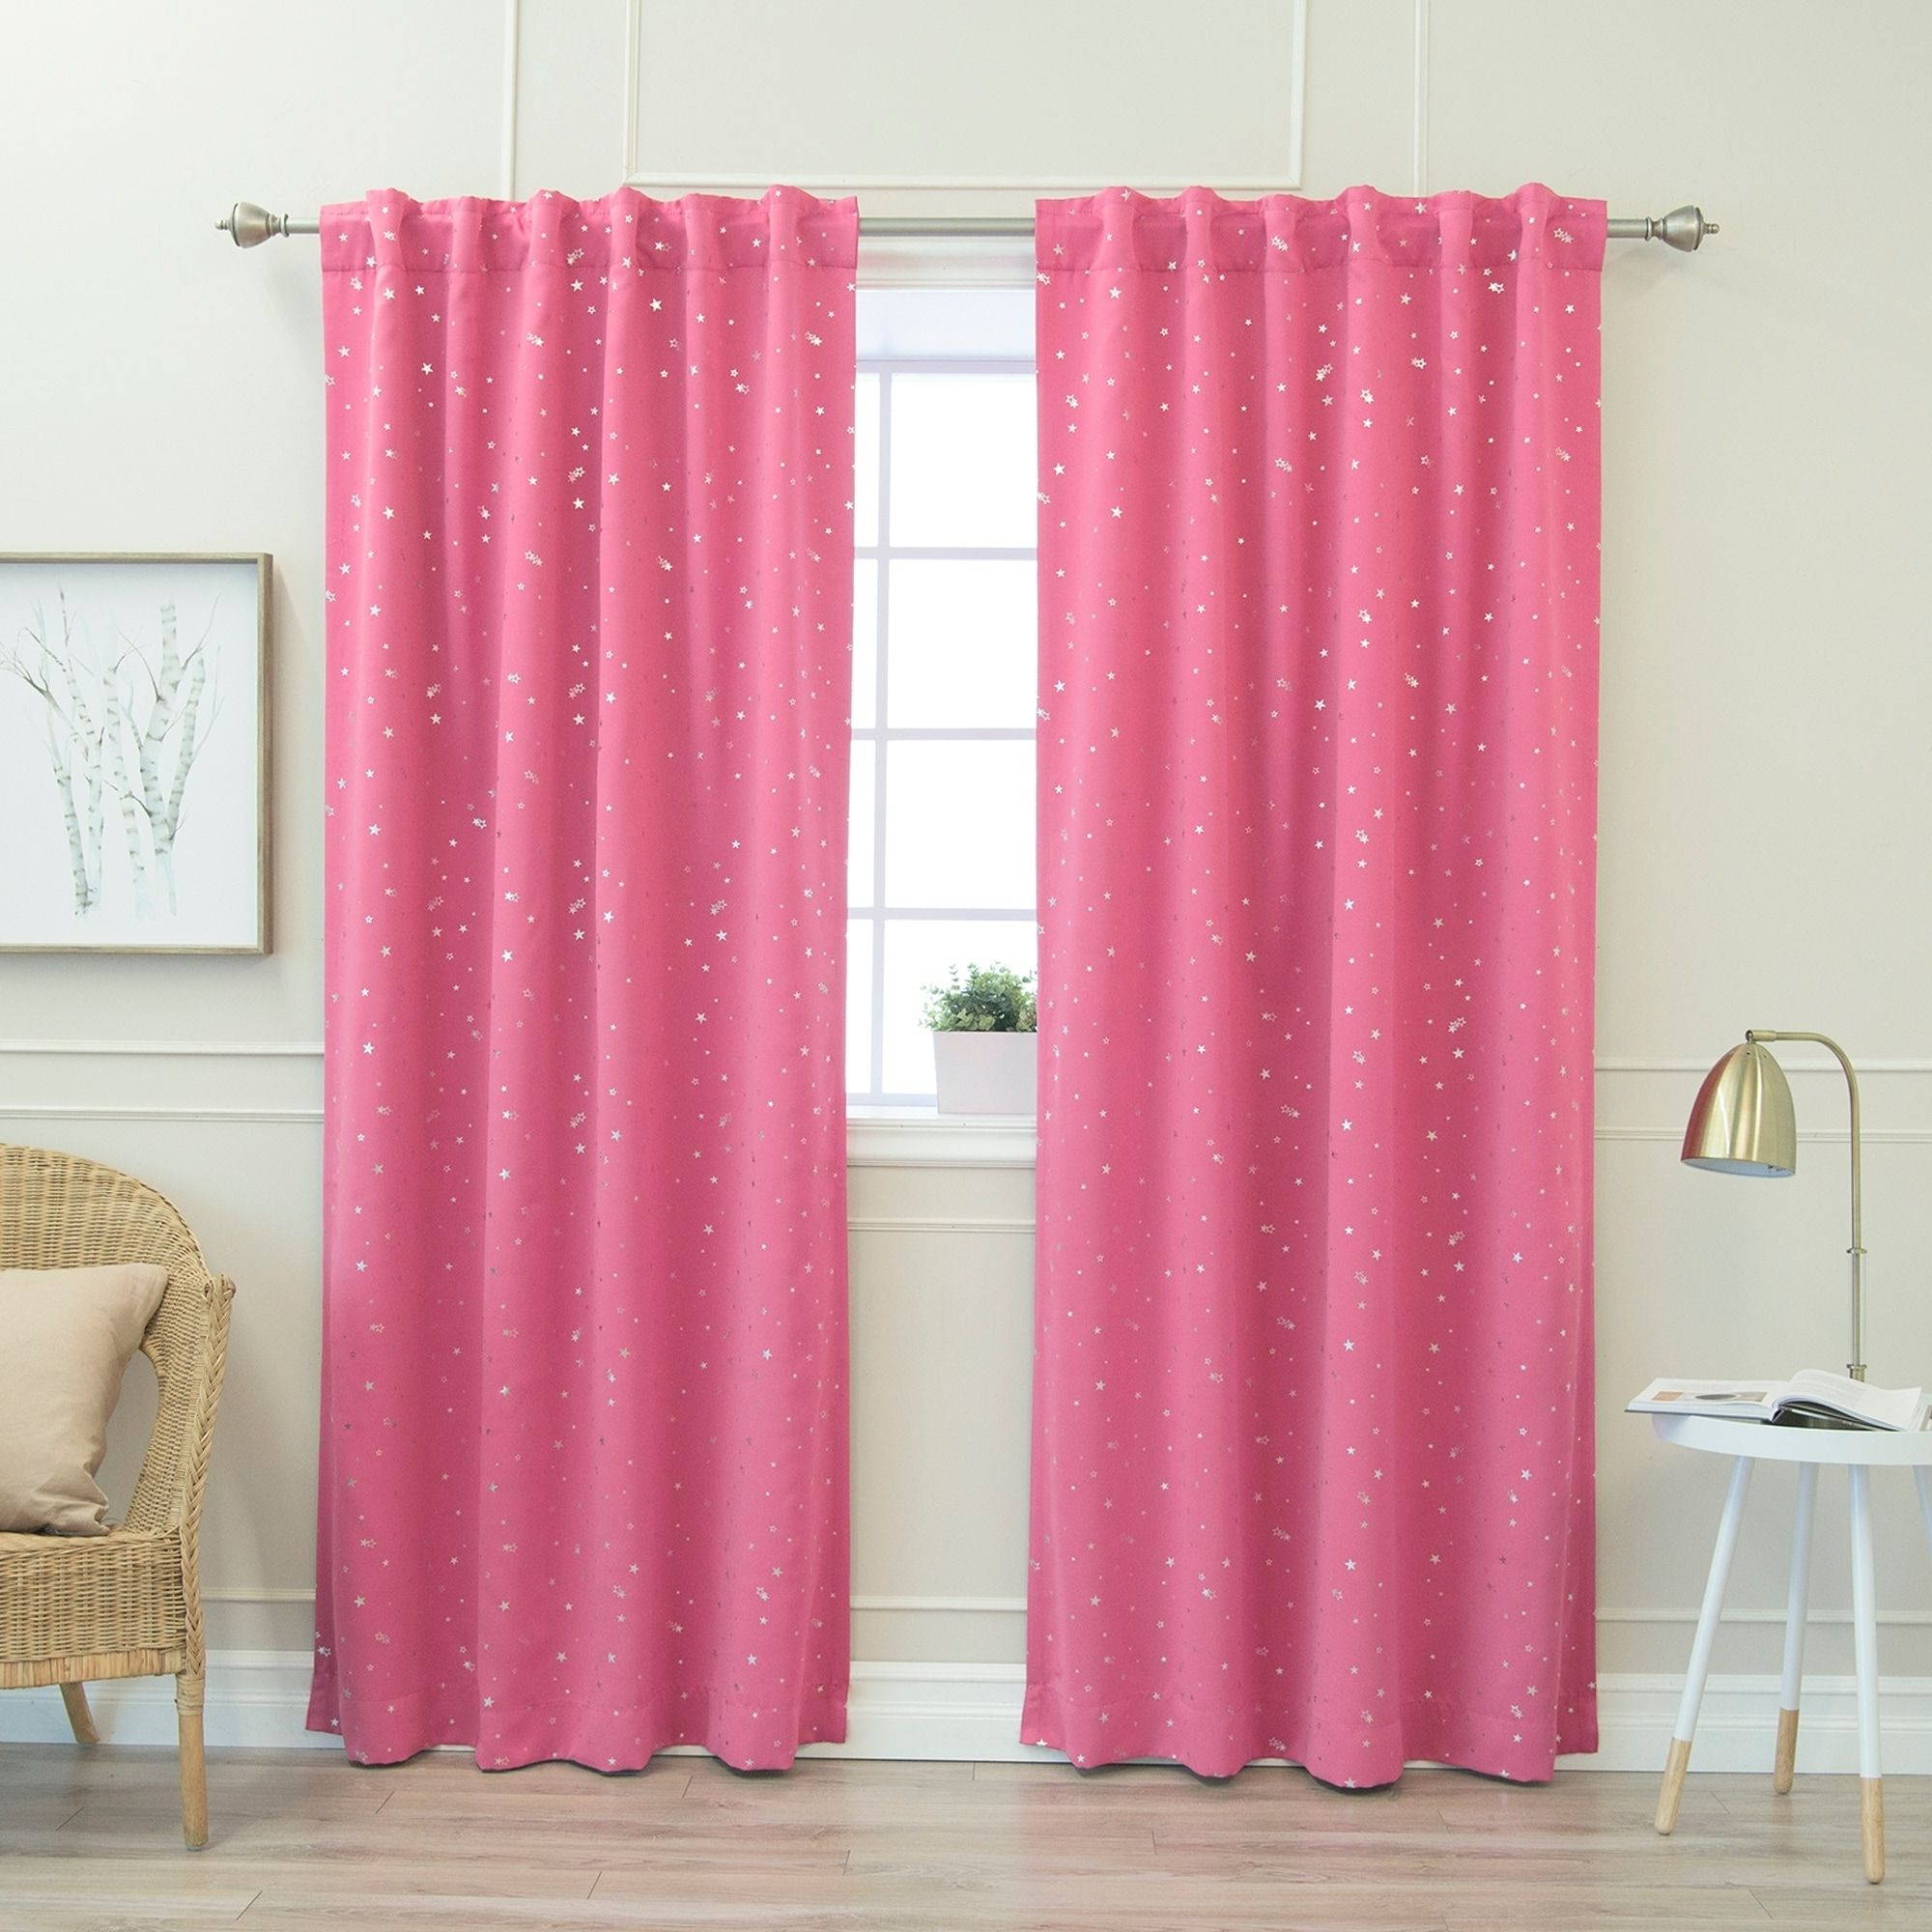 Best And Newest Insulated Thermal Blackout Curtain Panel Pairs Regarding Aurora Home Star Struck 84 Inch Insulated Thermal Blackout (View 17 of 20)